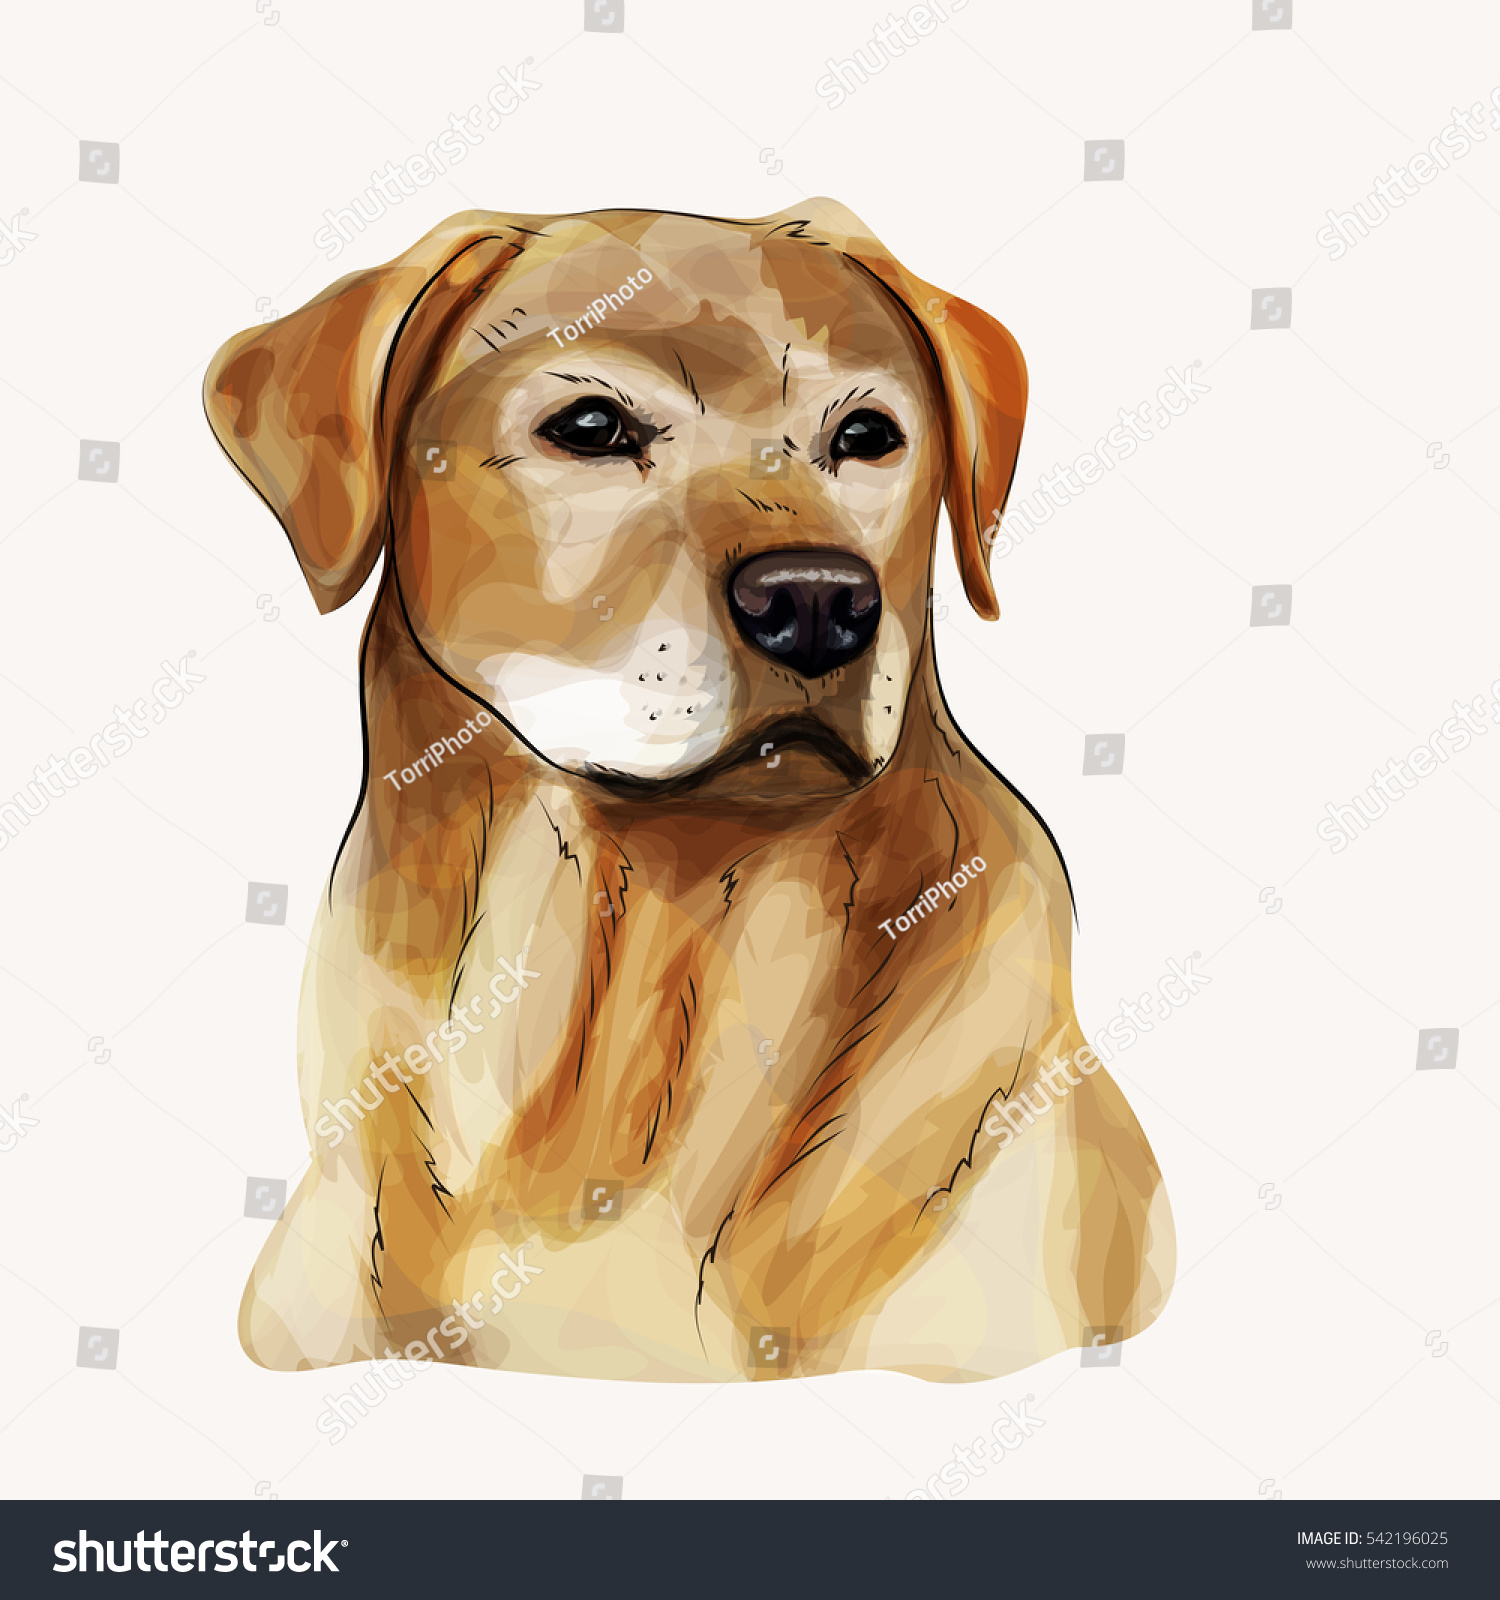 https://www.shutterstock.com/image-illustration/digital-illustration-yellow-dog-breed-labrador-542196025